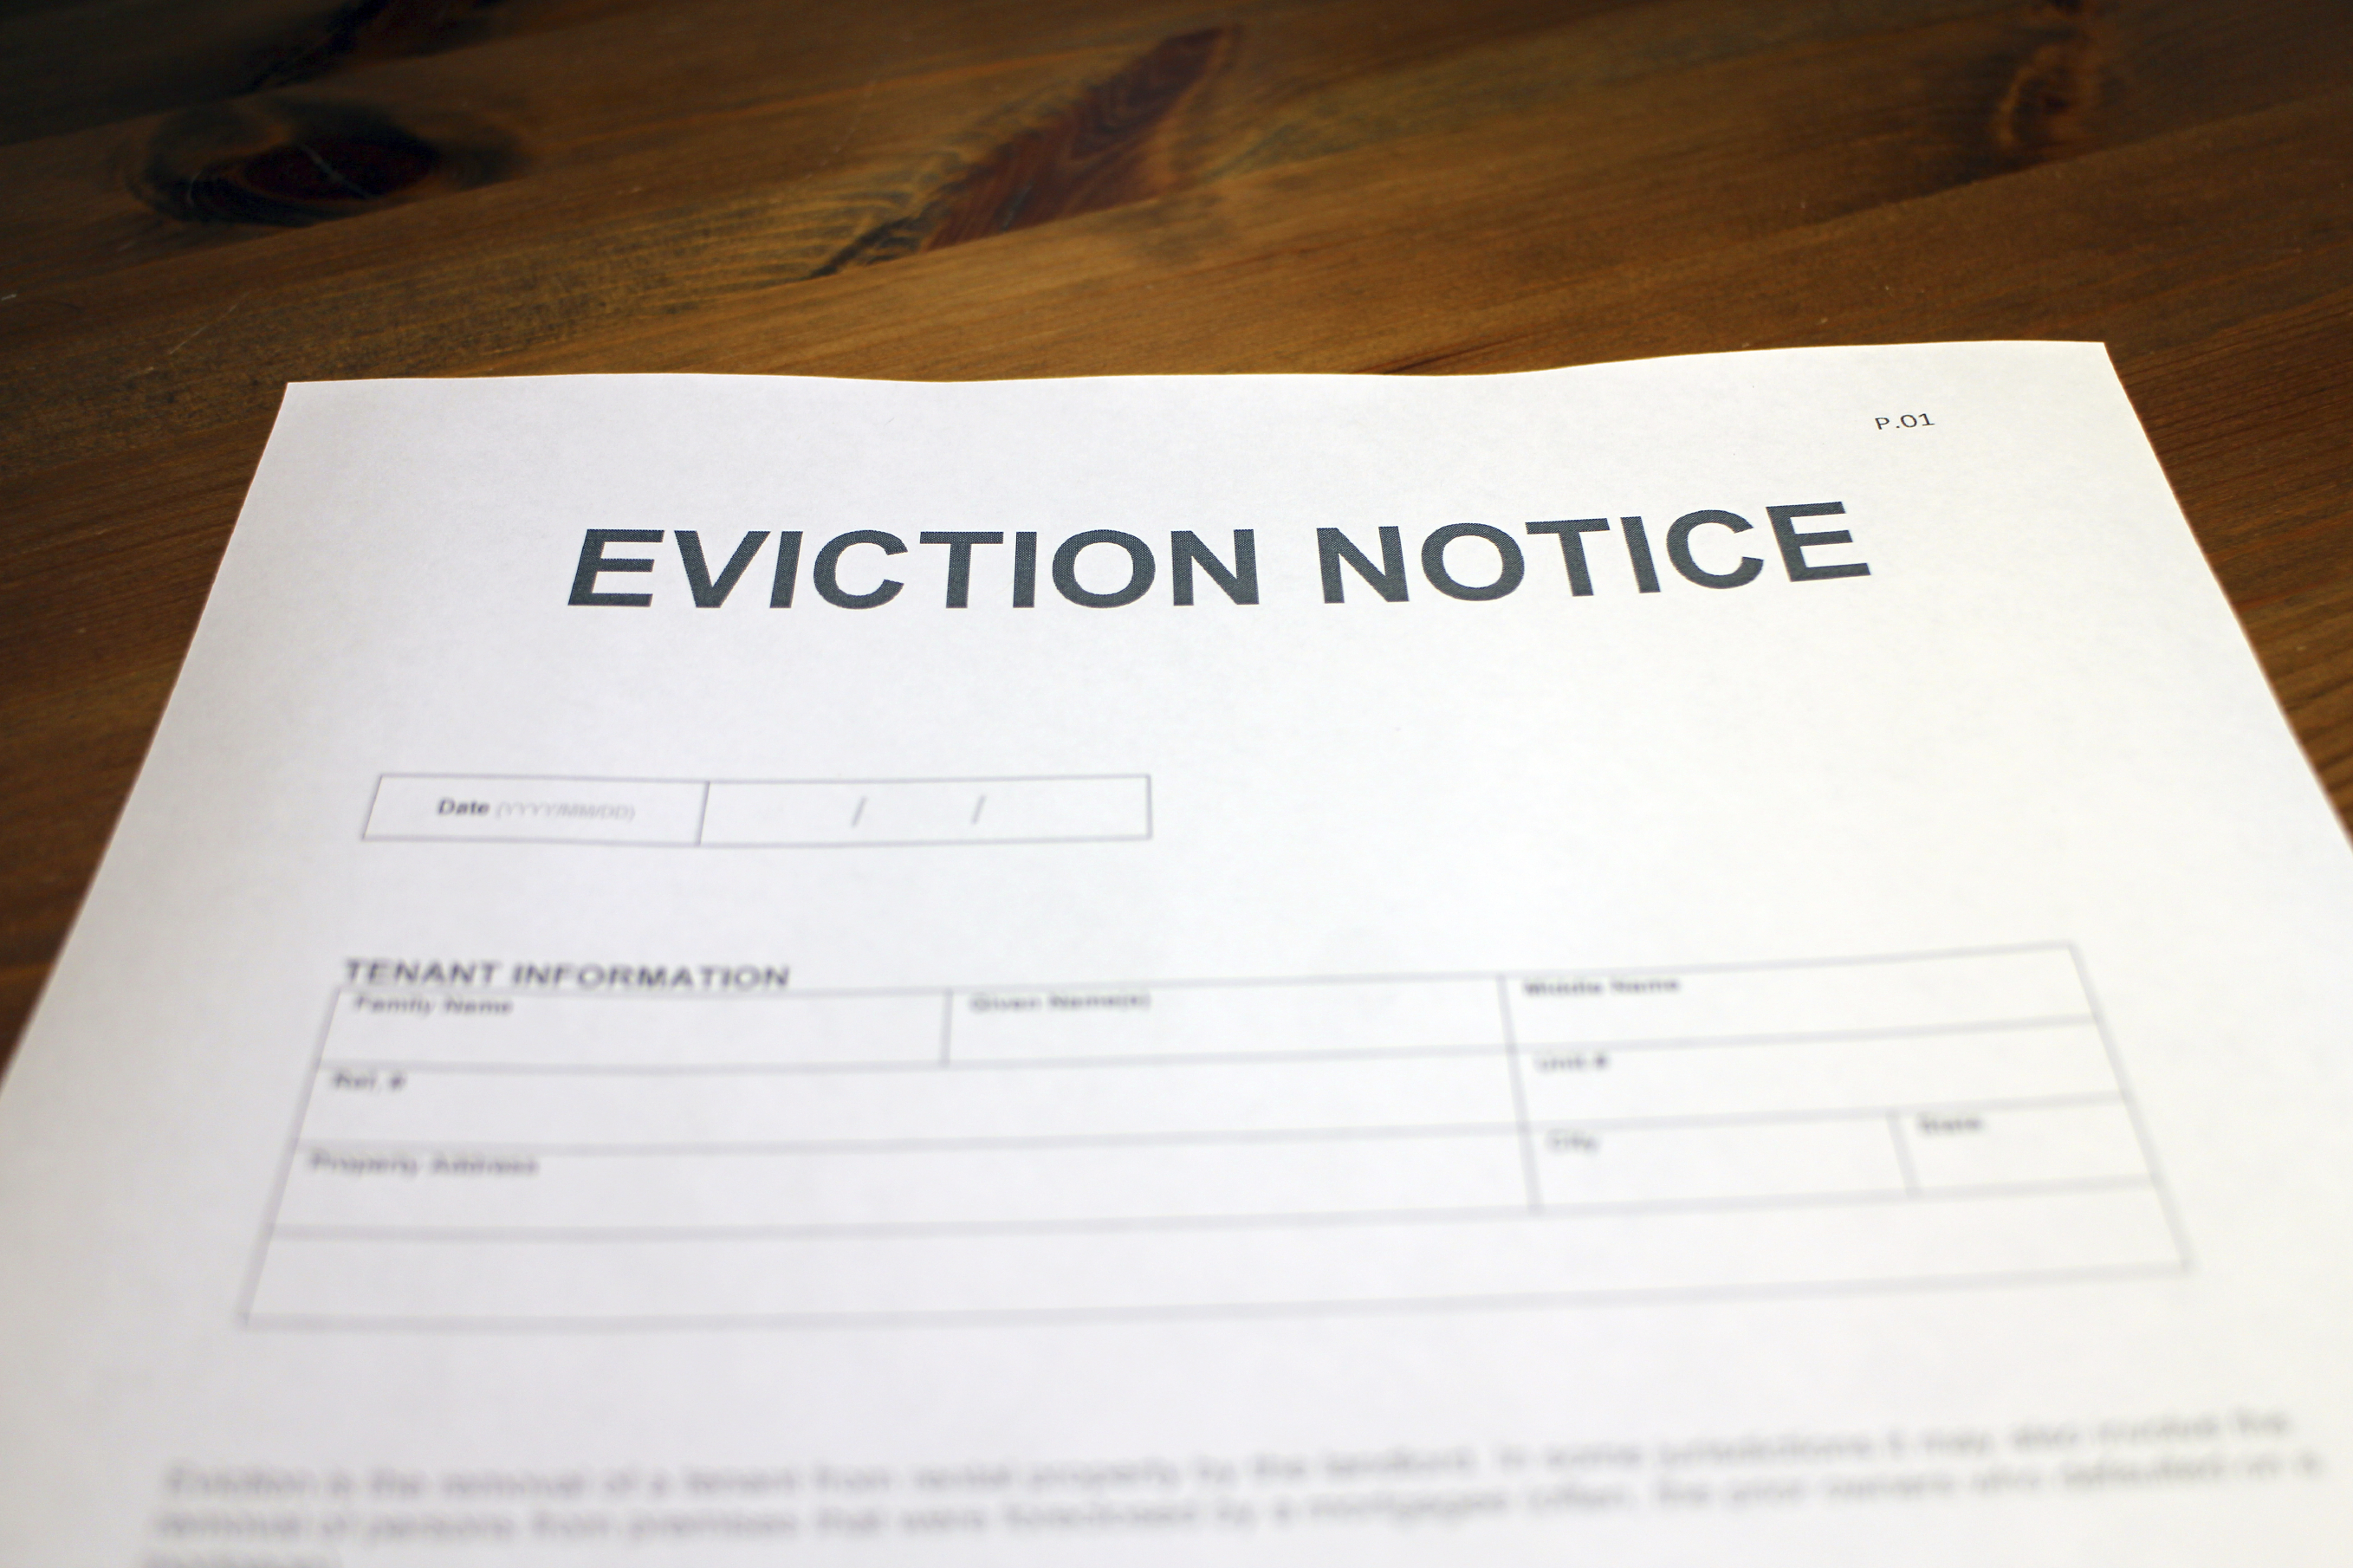 Court-appointed bailiffs take 118 days to remove tenants